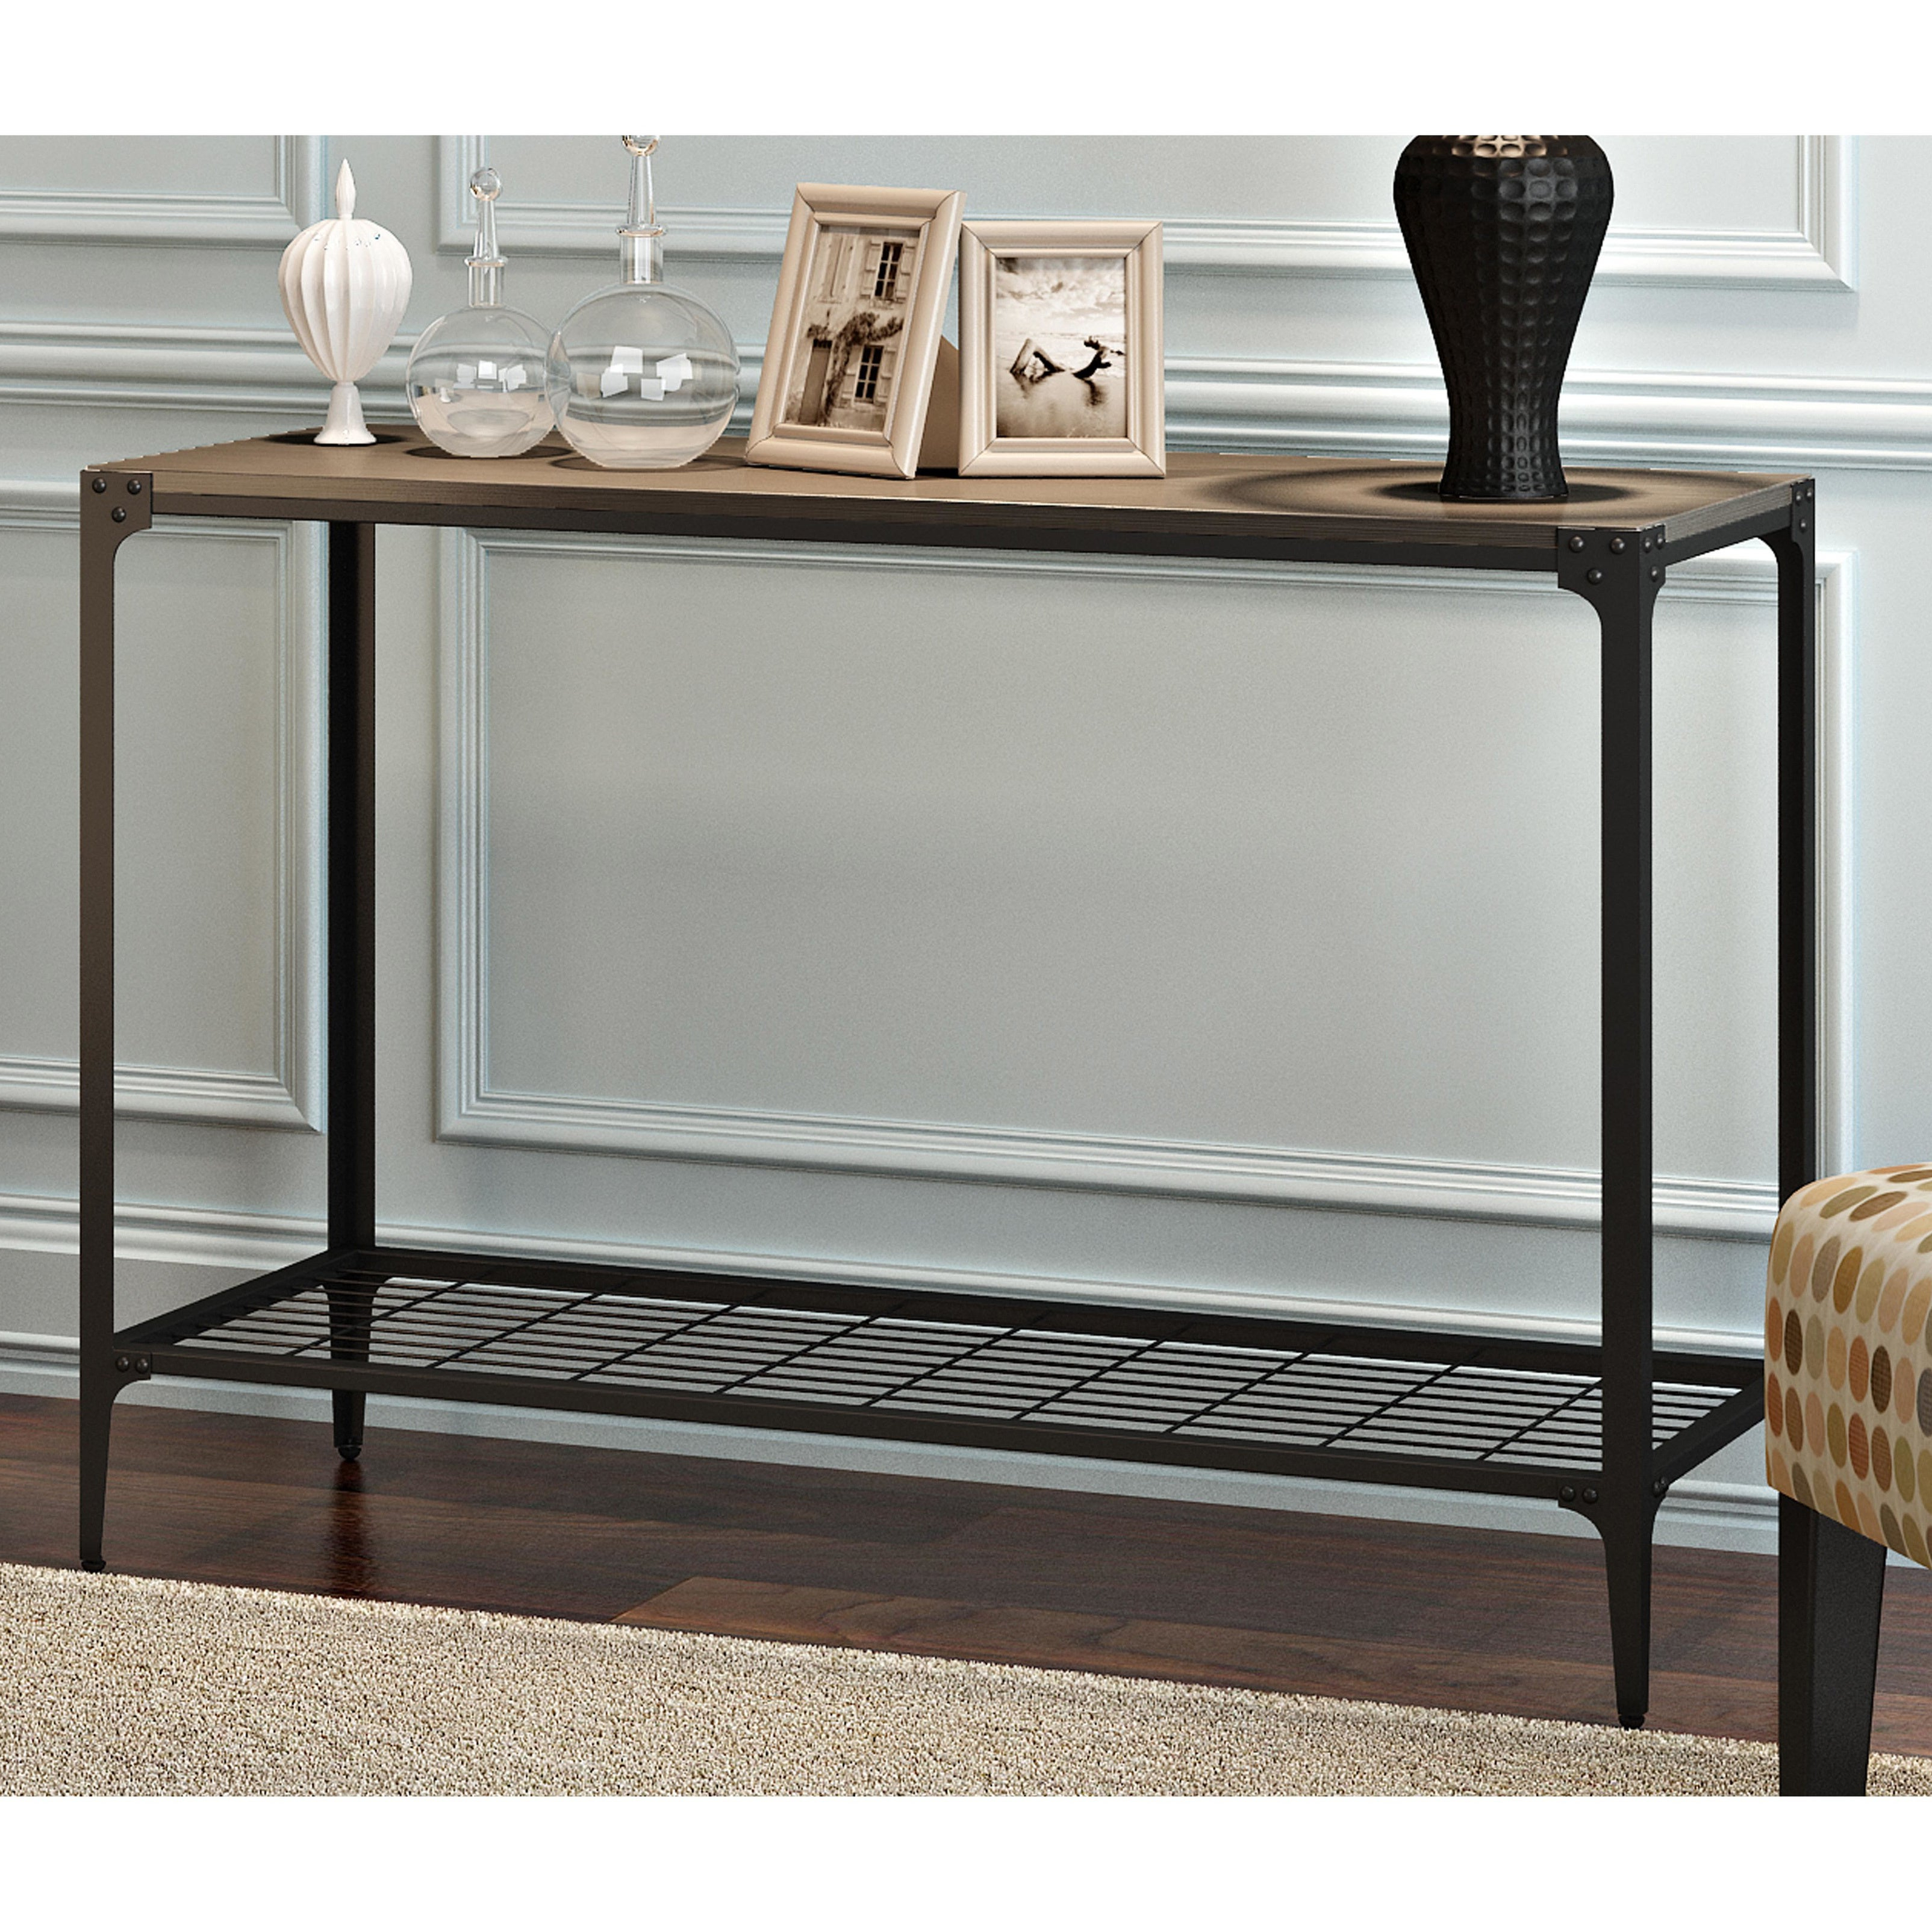 Carbon Loft Witten Angle Iron And Driftwood Entry Table – 44 X 16 X 30H Within Recent Carbon Loft Witten Angle Iron And Driftwood Coffee Tables (View 5 of 20)